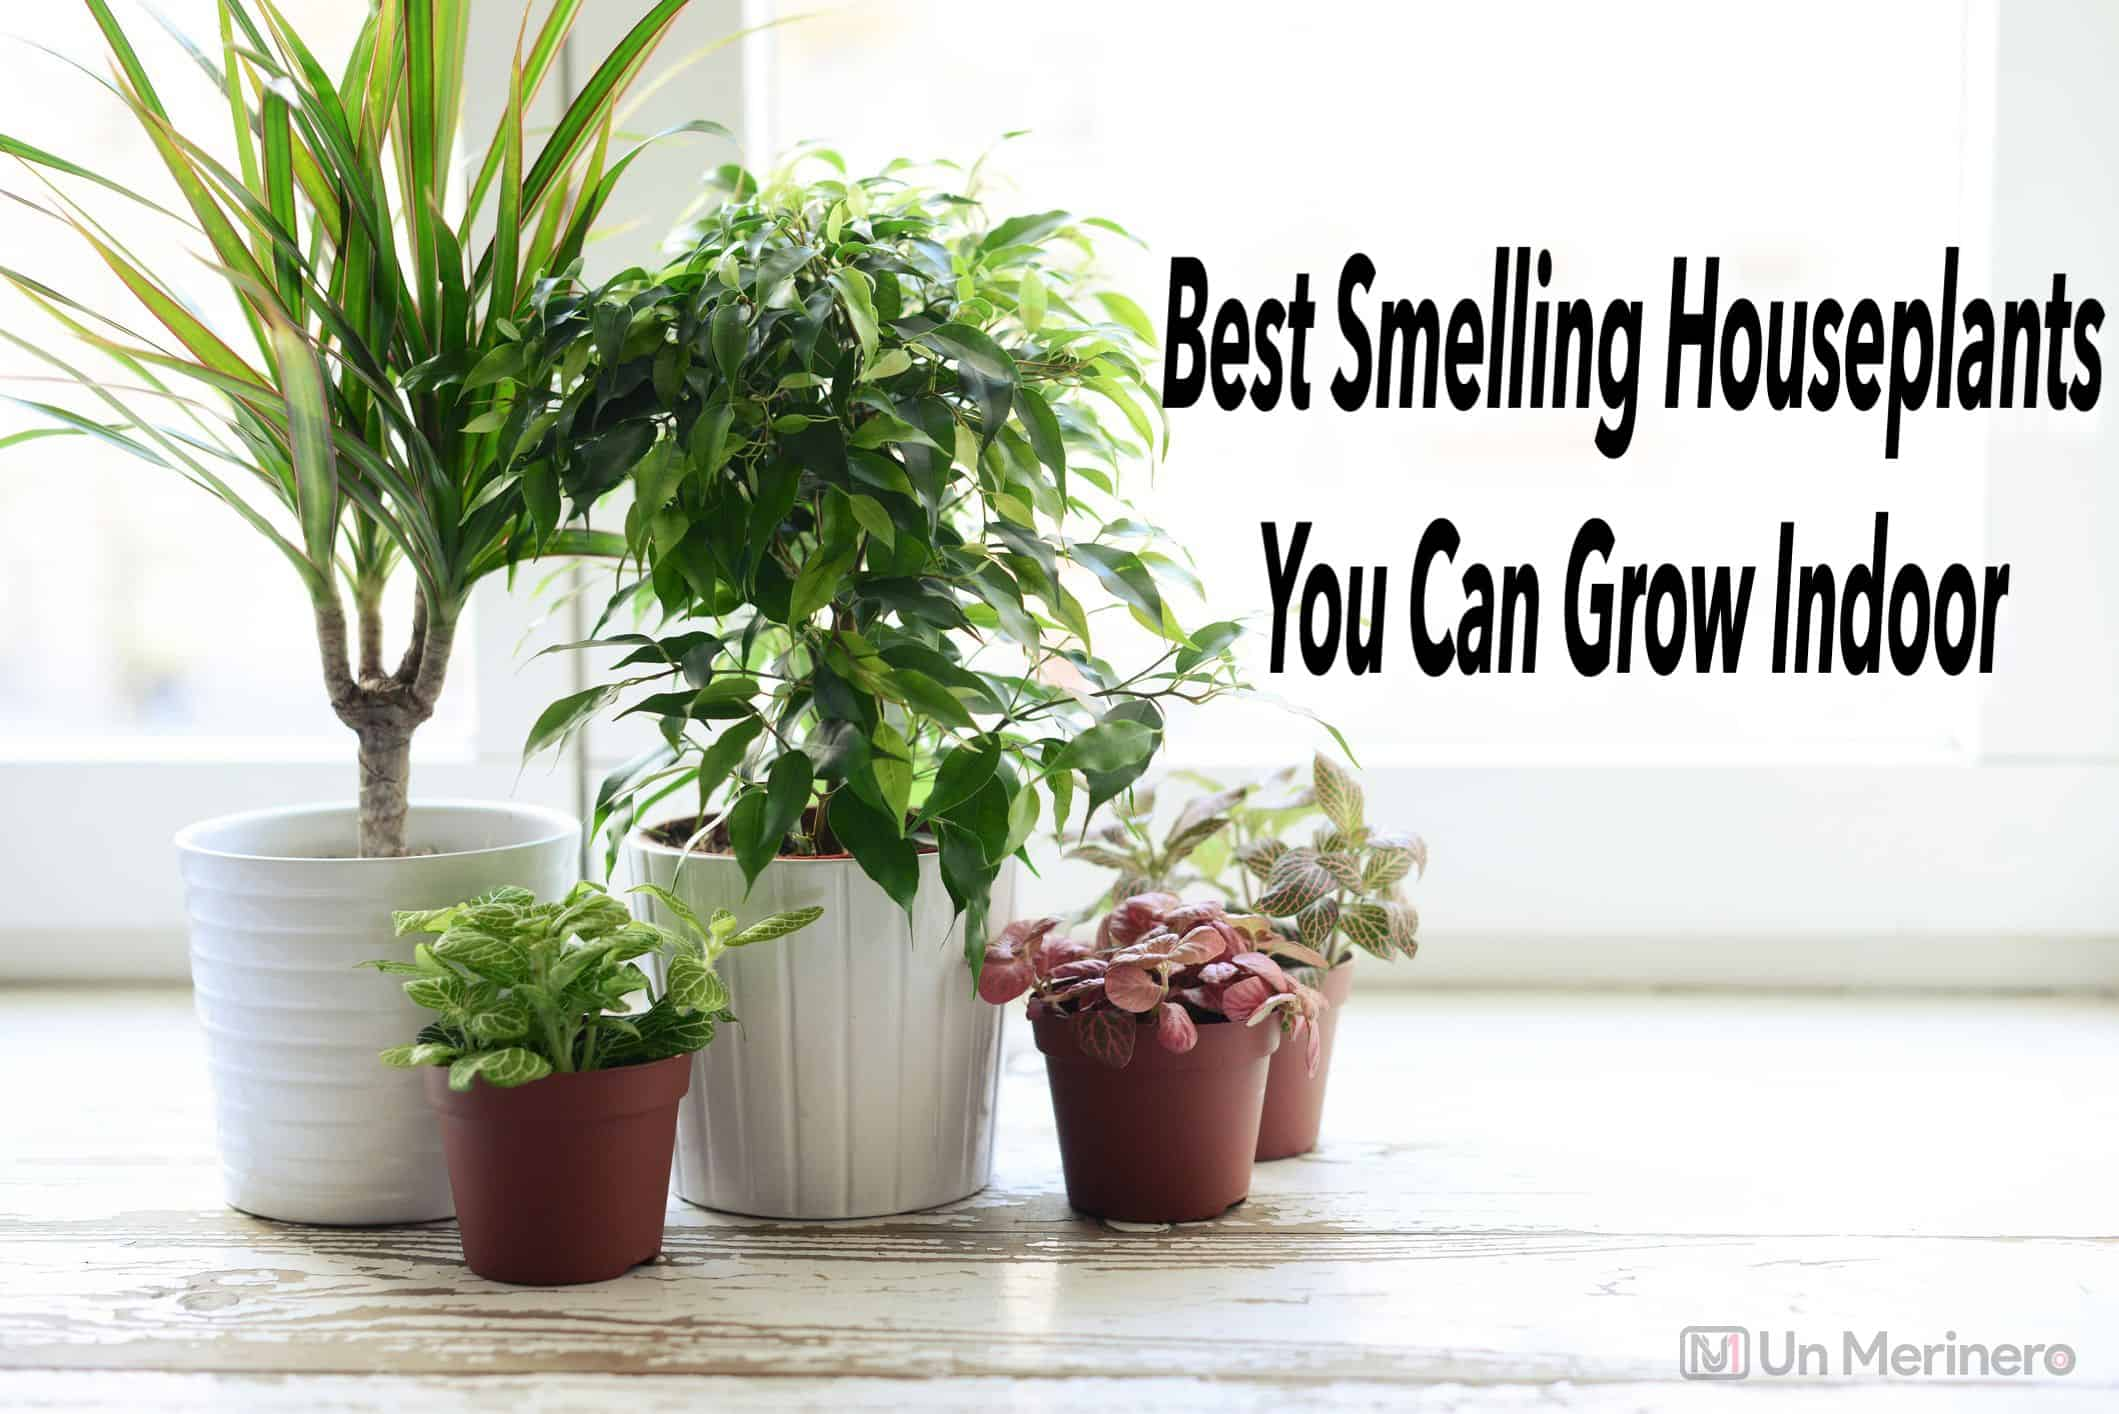 Best Smelling Houseplants to grow indoor